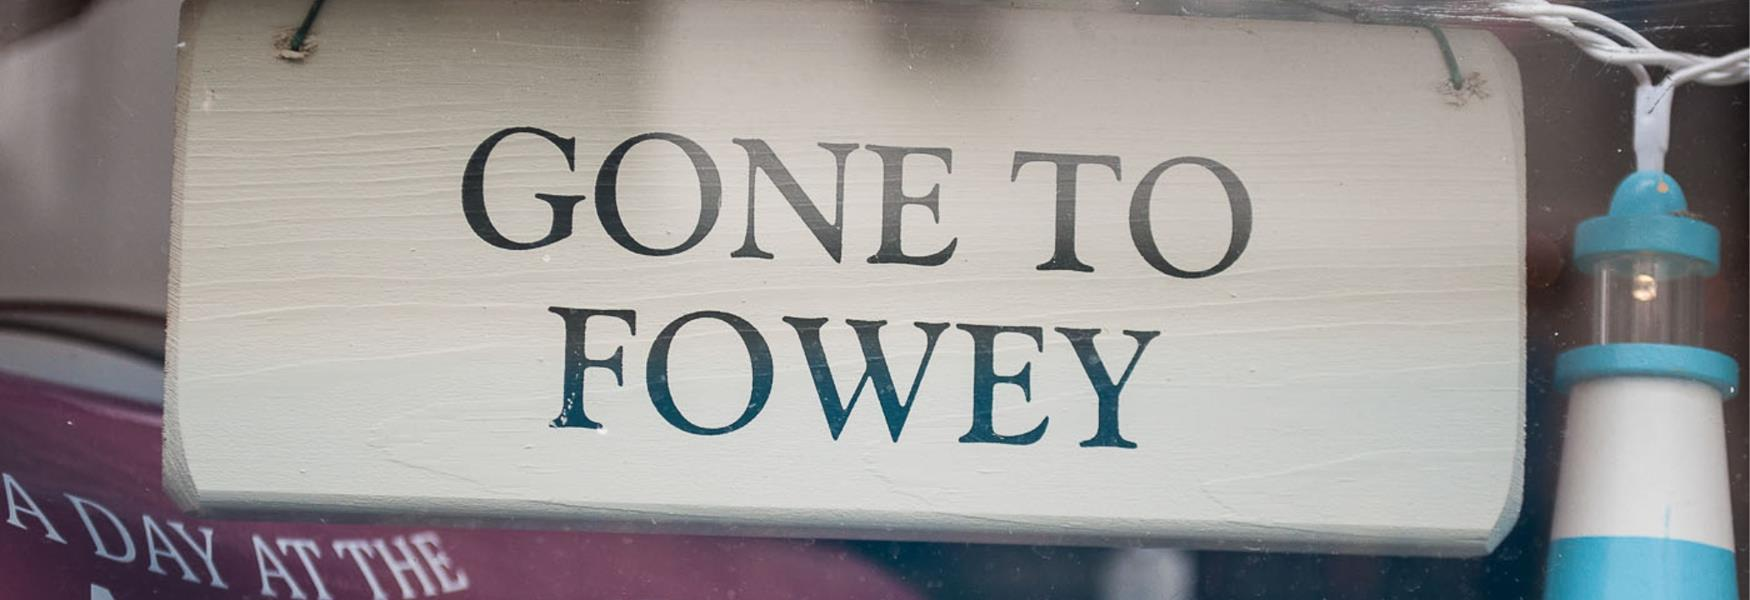 Gone to Fowey sign (c) Justine Hambly Photography